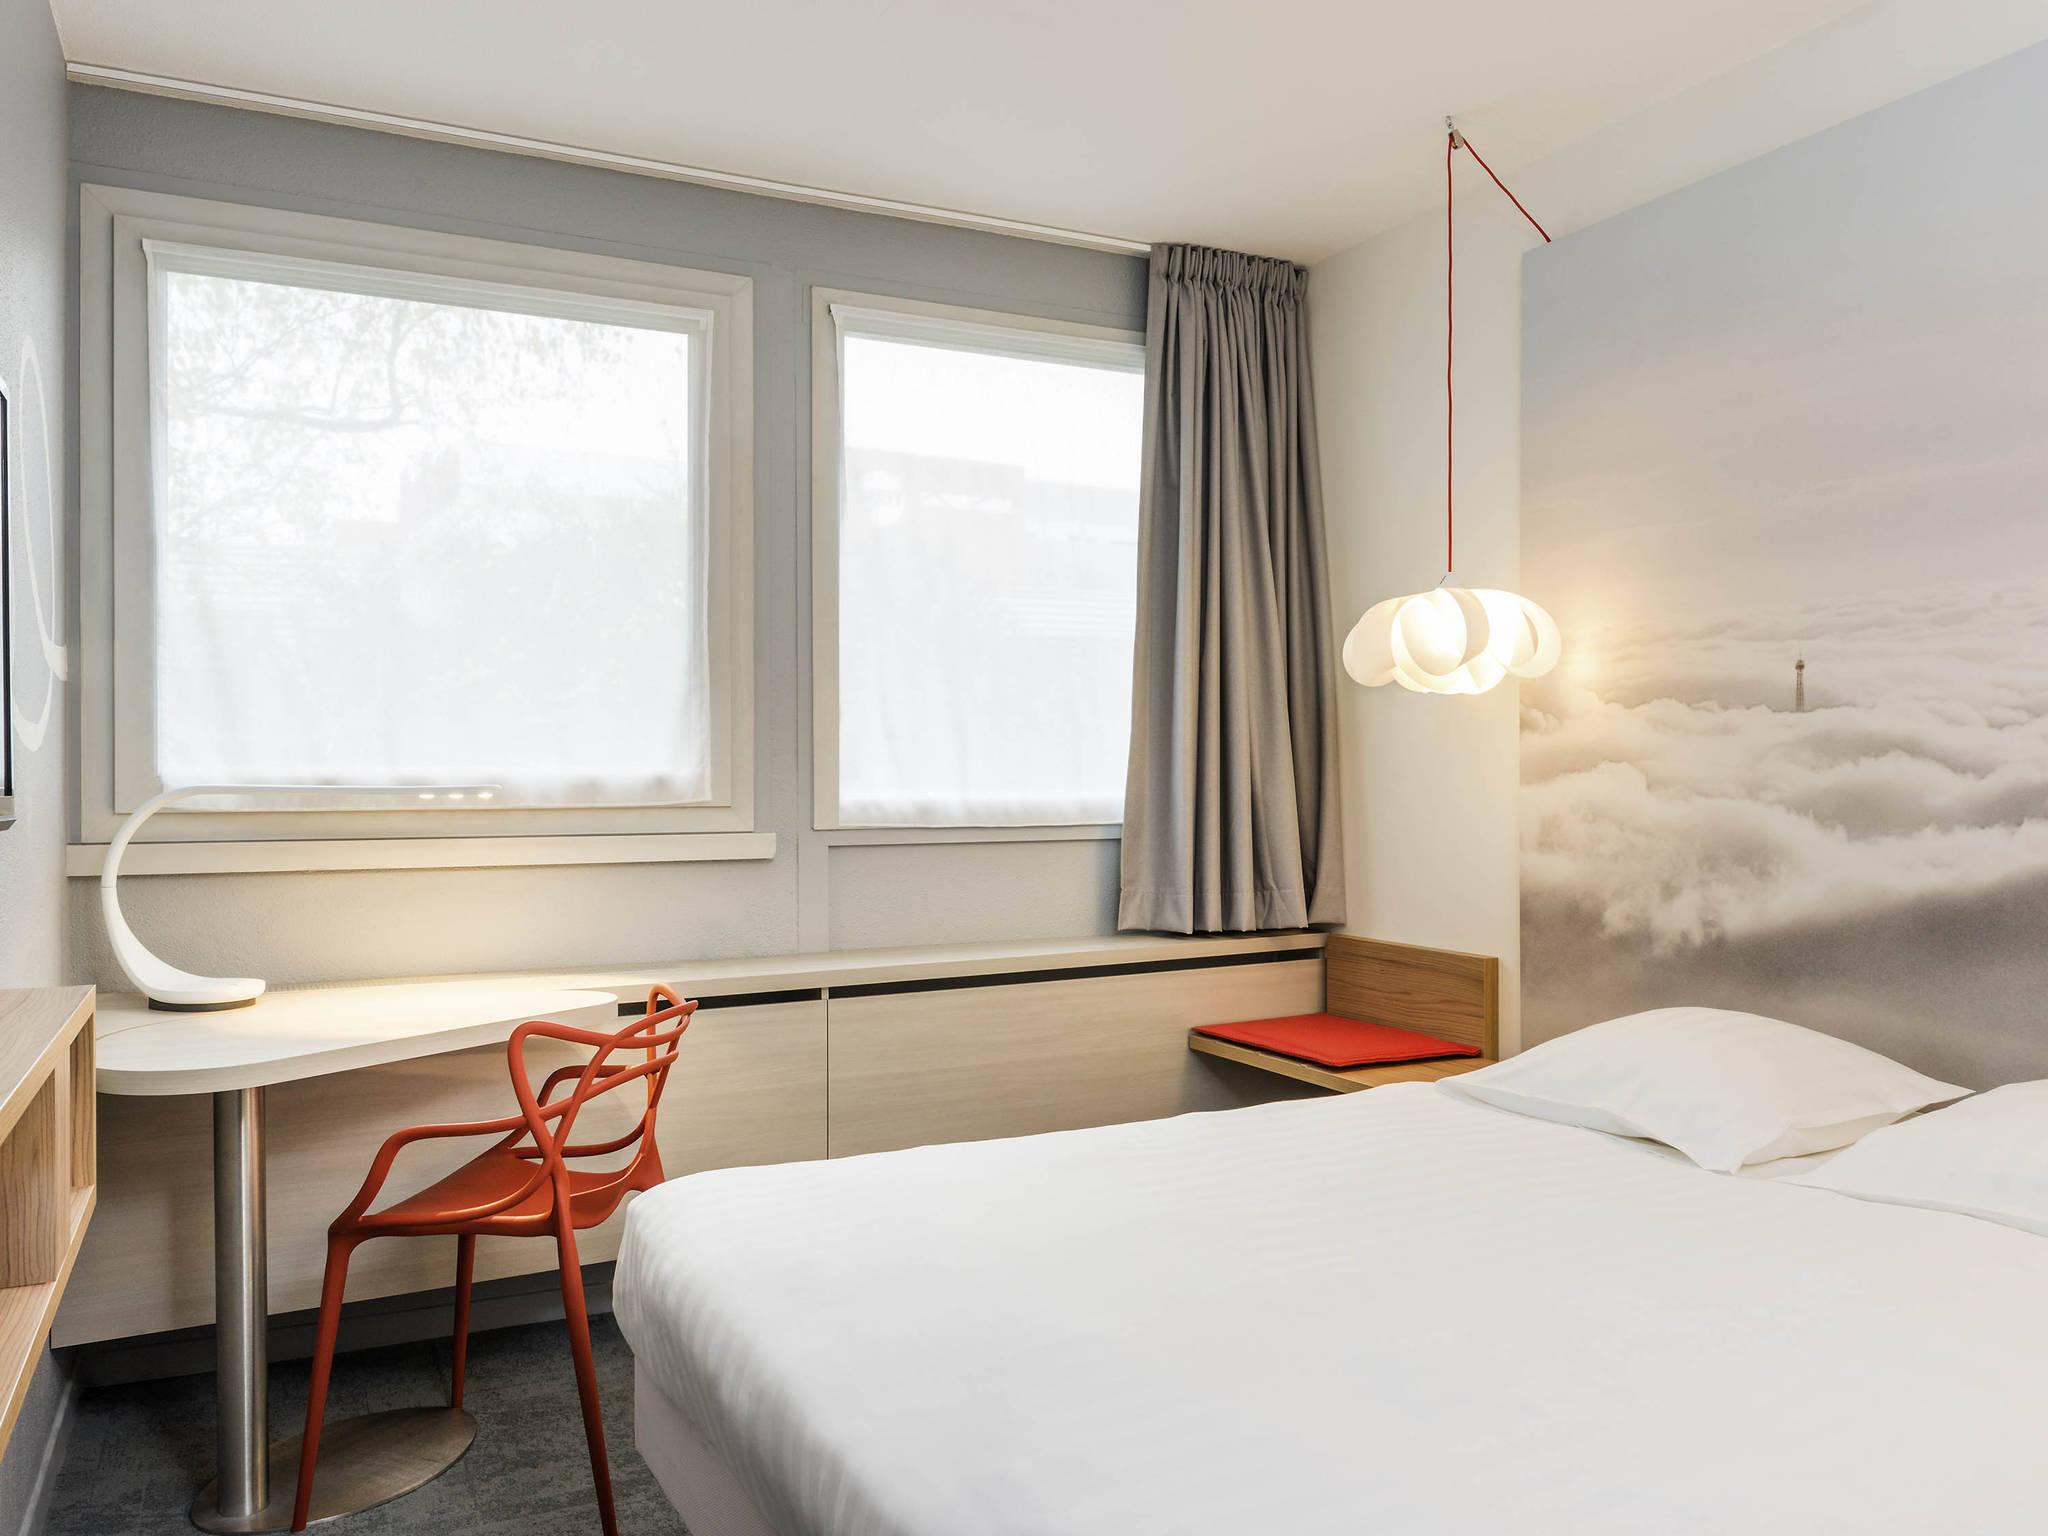 Hotel In Velizy Villacoublay